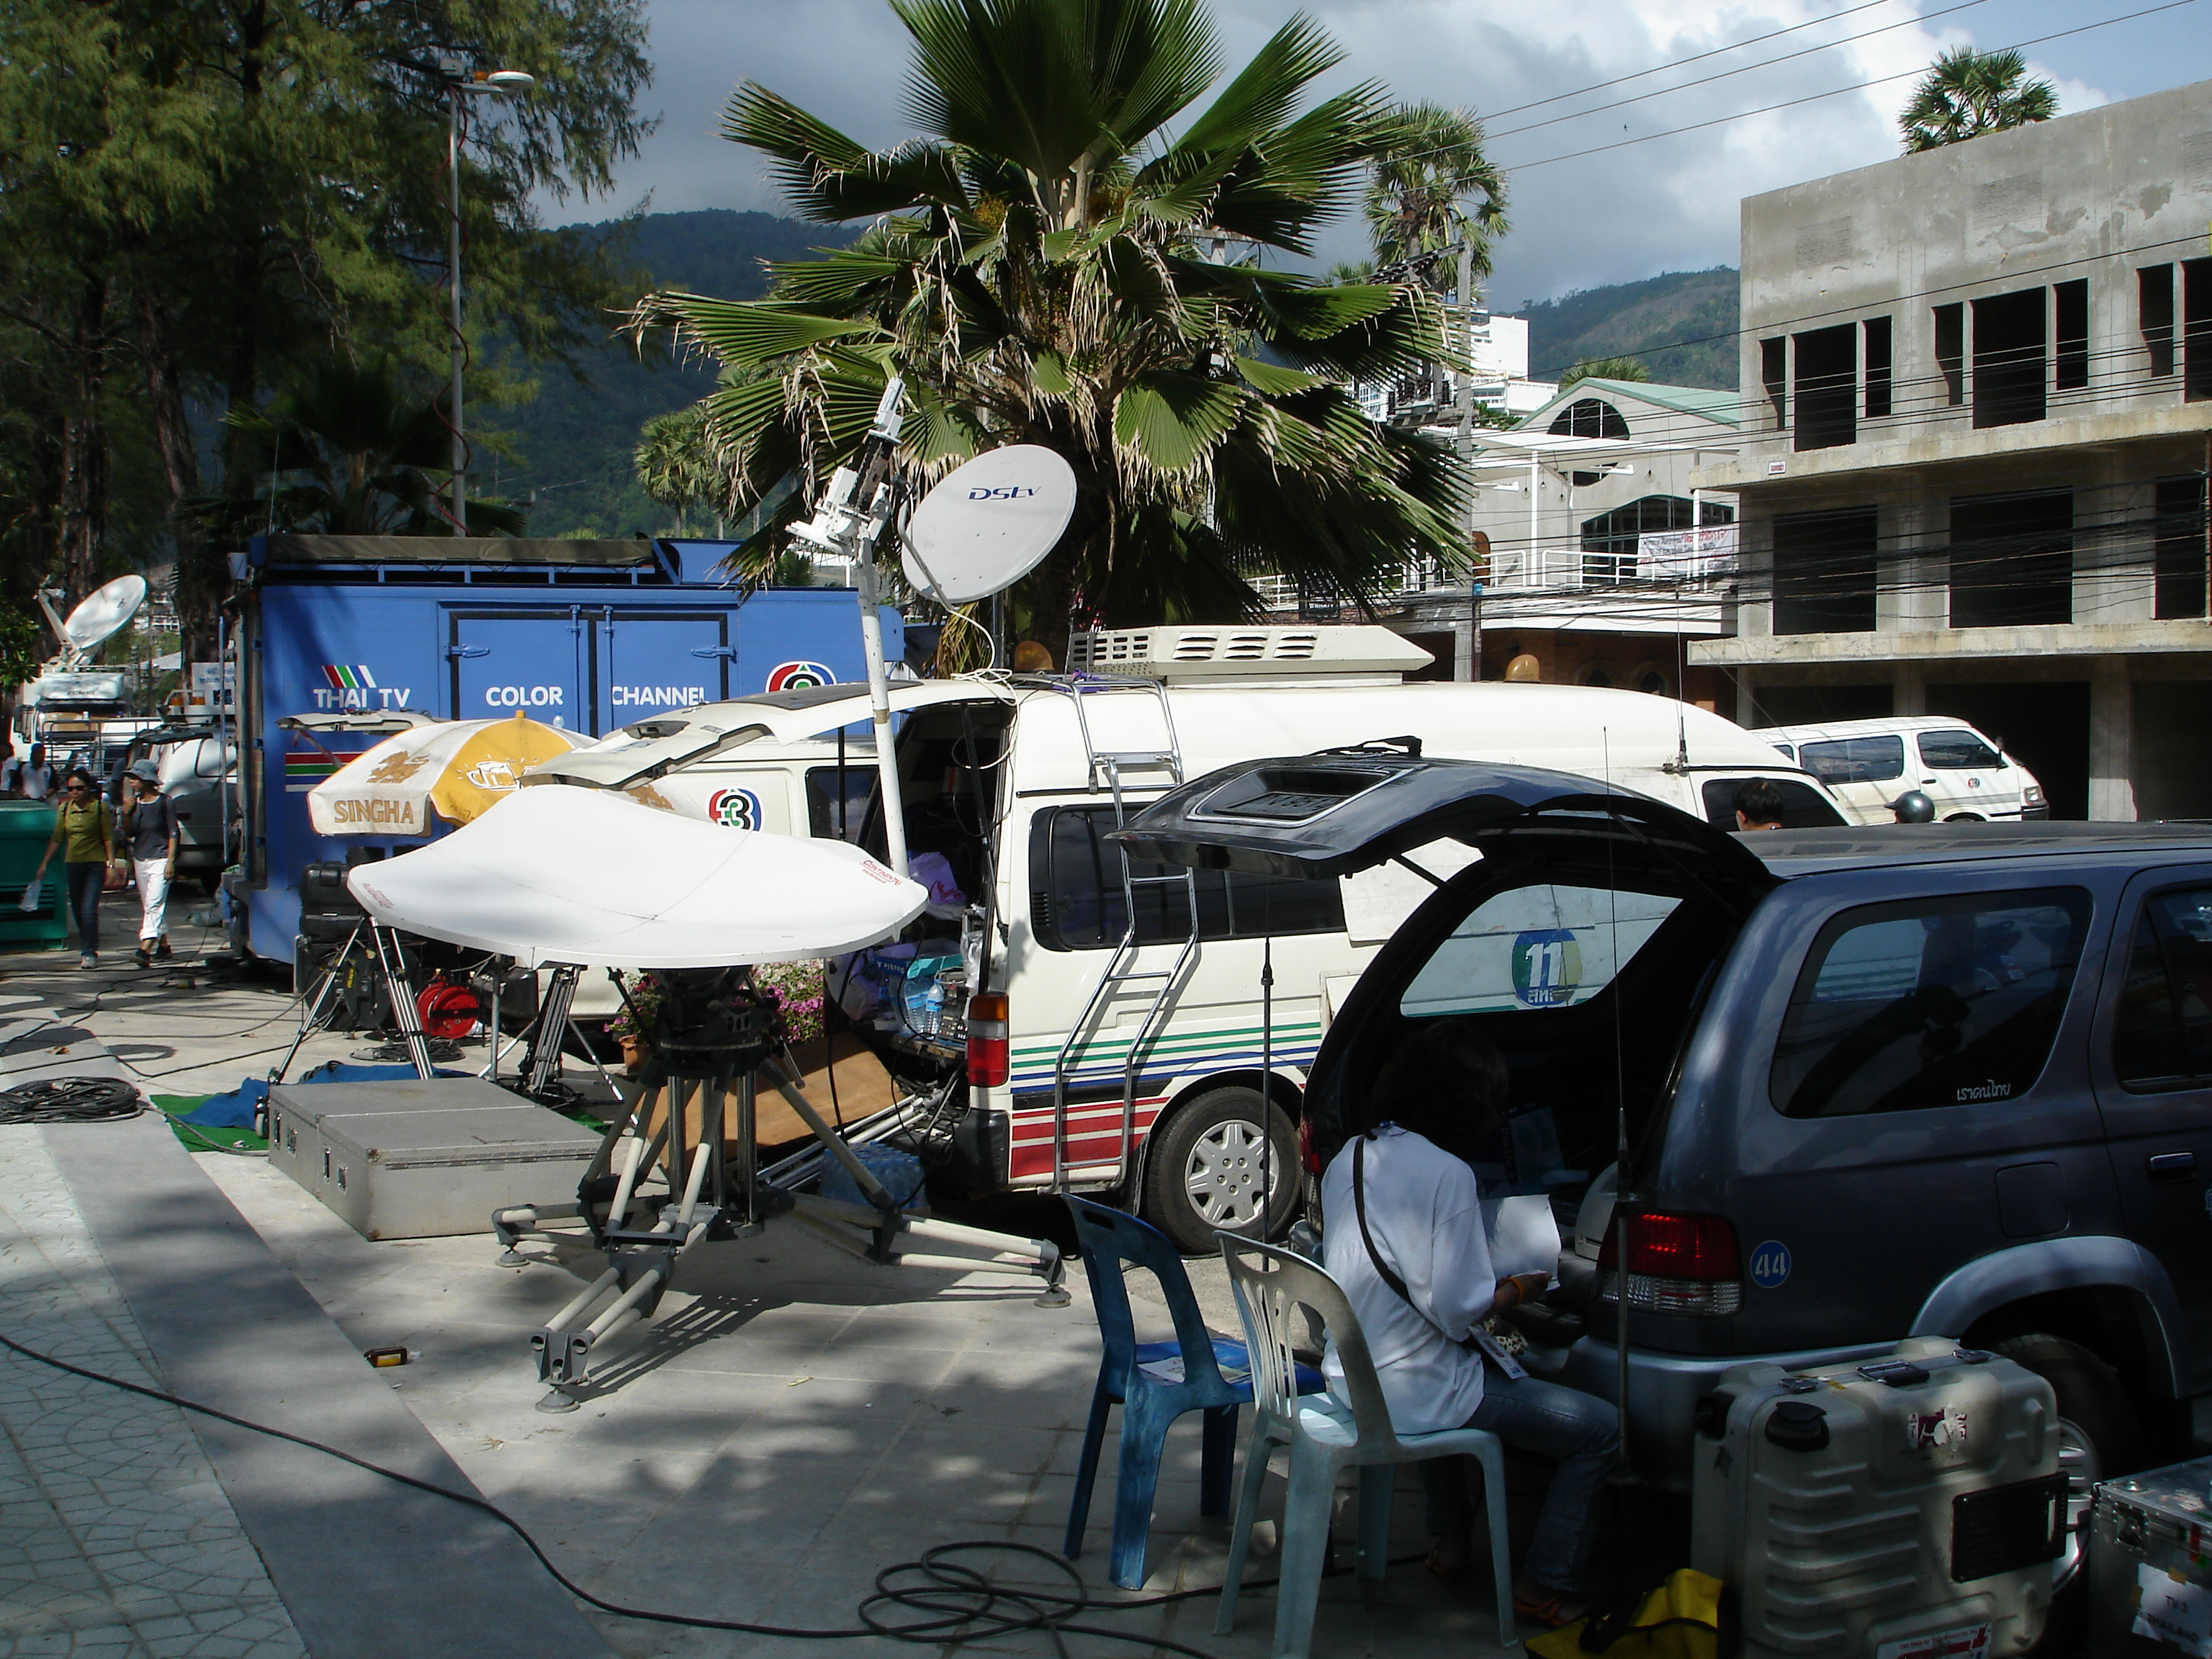 Media coverage in the aftermath of the 2004 Boxing Day tsunami was intense and had yet to diminish even on the first anniversary of the disaster while Phuket, Thailand, still attempted to cleanup and rebuild. Photo taken by Mark Jochim on December 26, 2005.